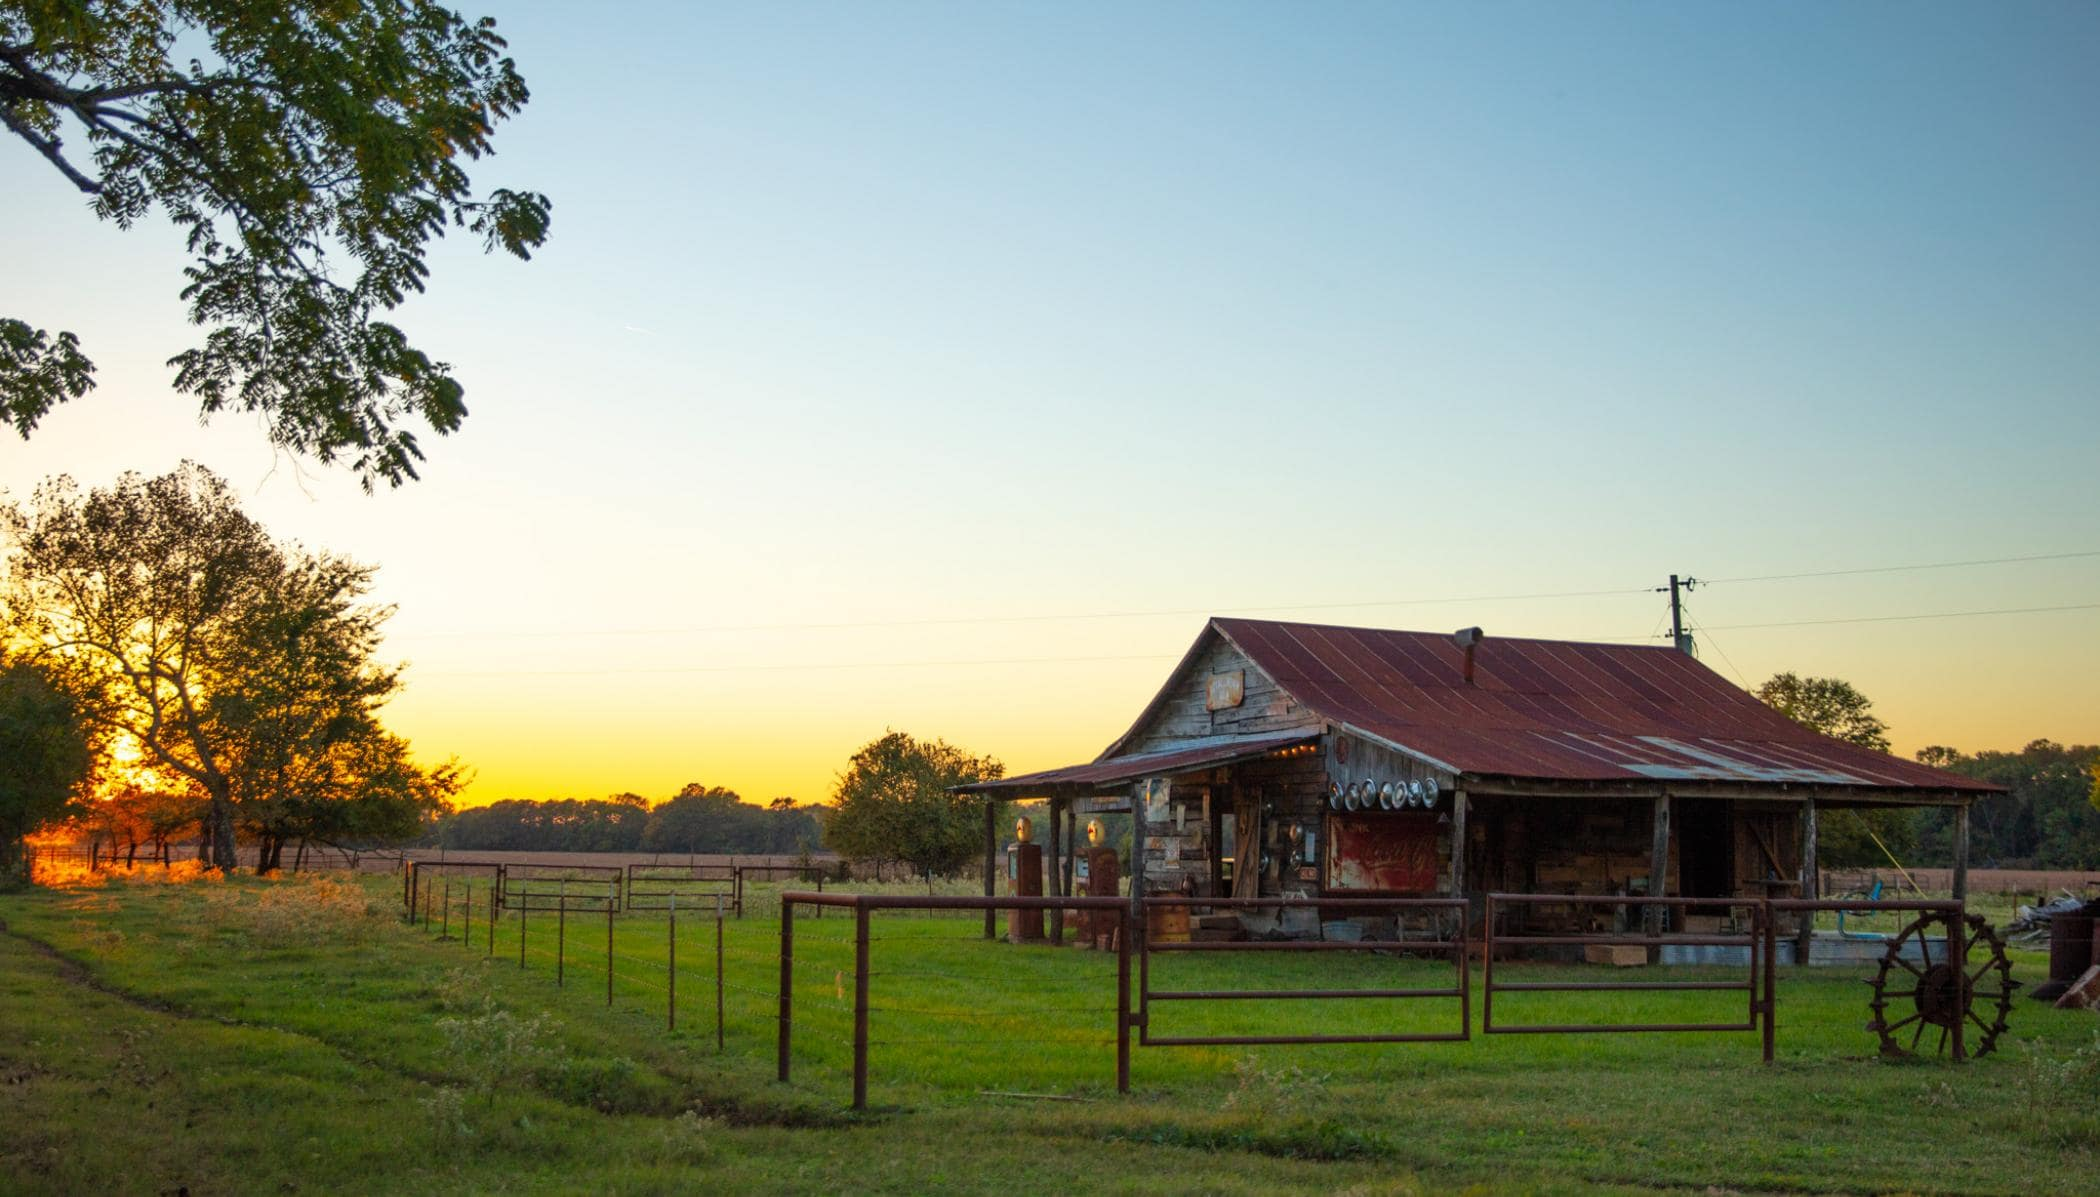 old ranch barn and corral surrounded by trees with colorful sunset behind it